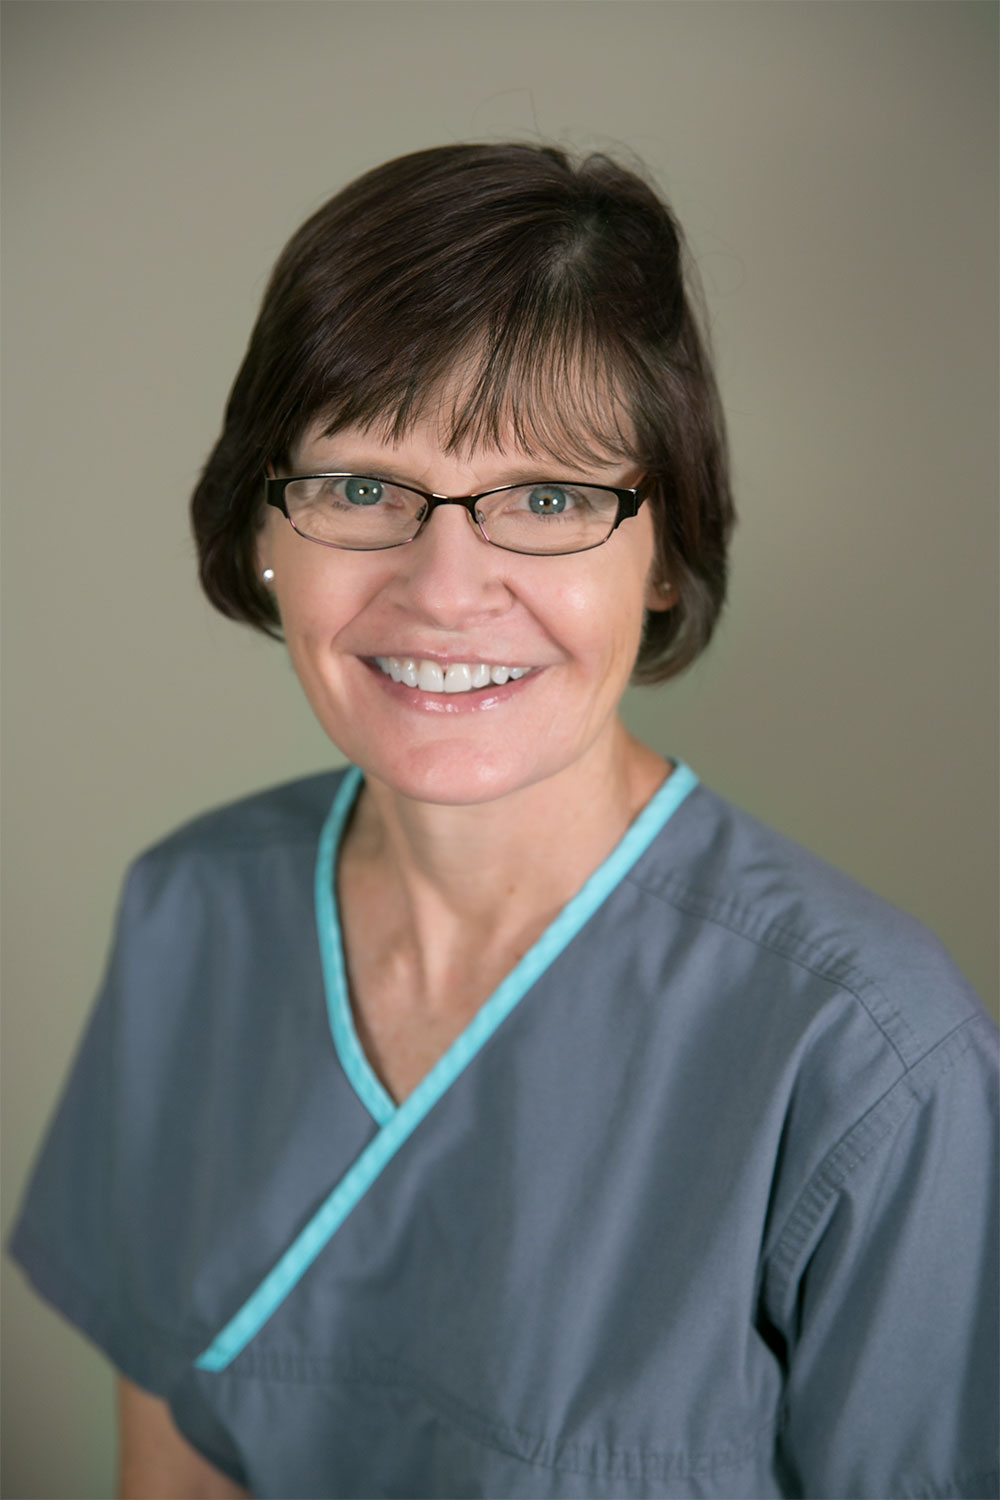 Karen Wolfe, Mouth and Teeth expert